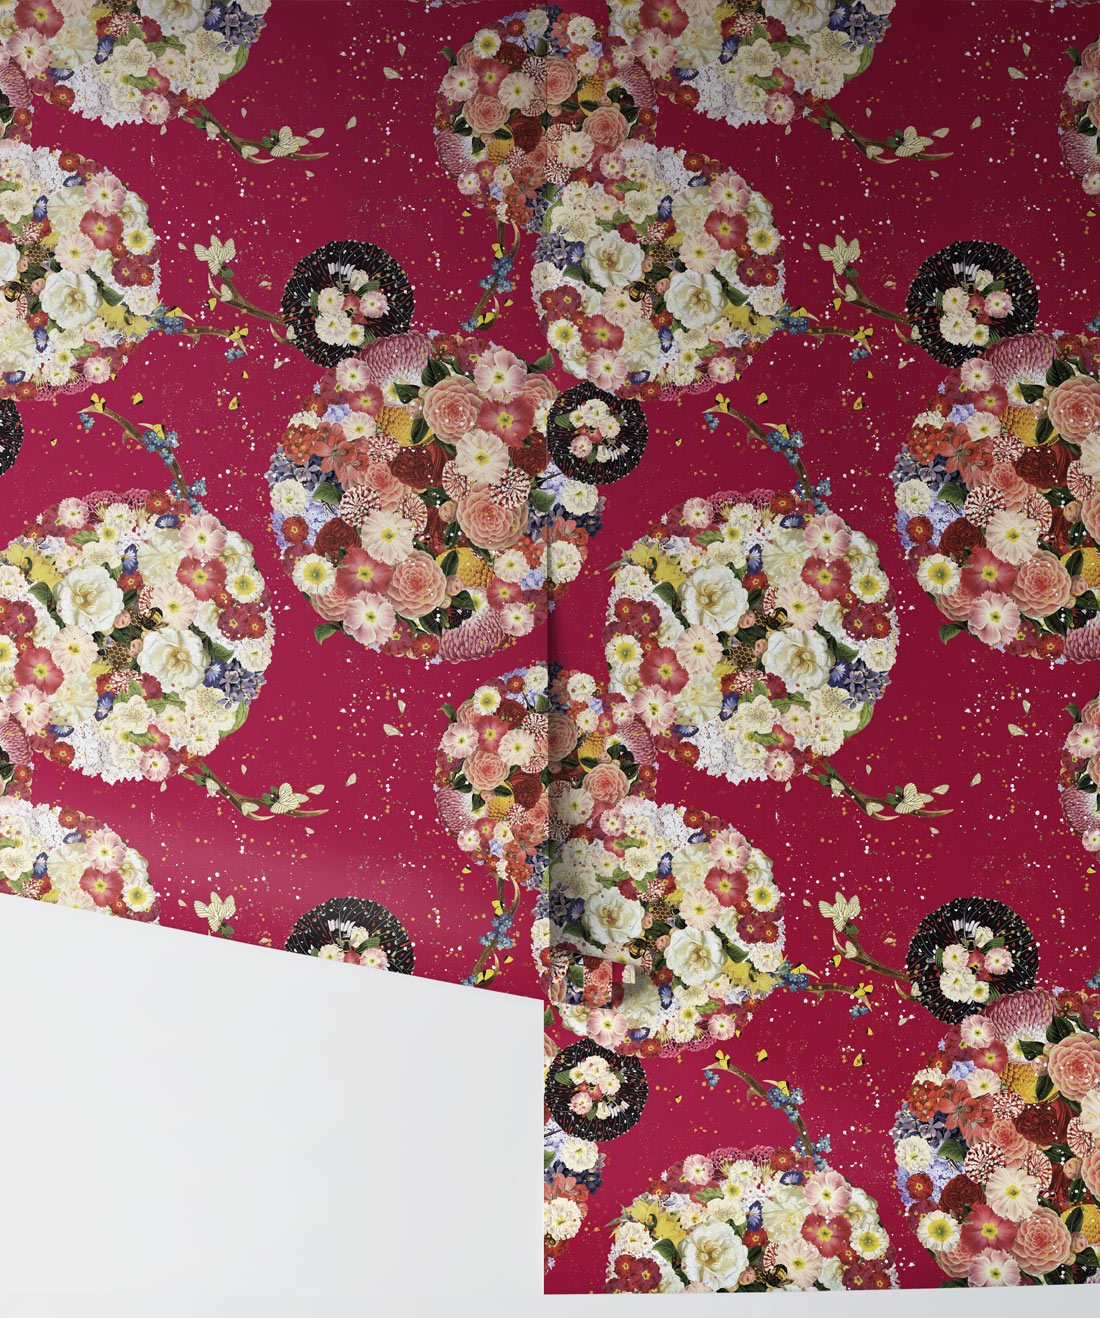 Flower Bomb Removable Wallpaper, Kingdom Home